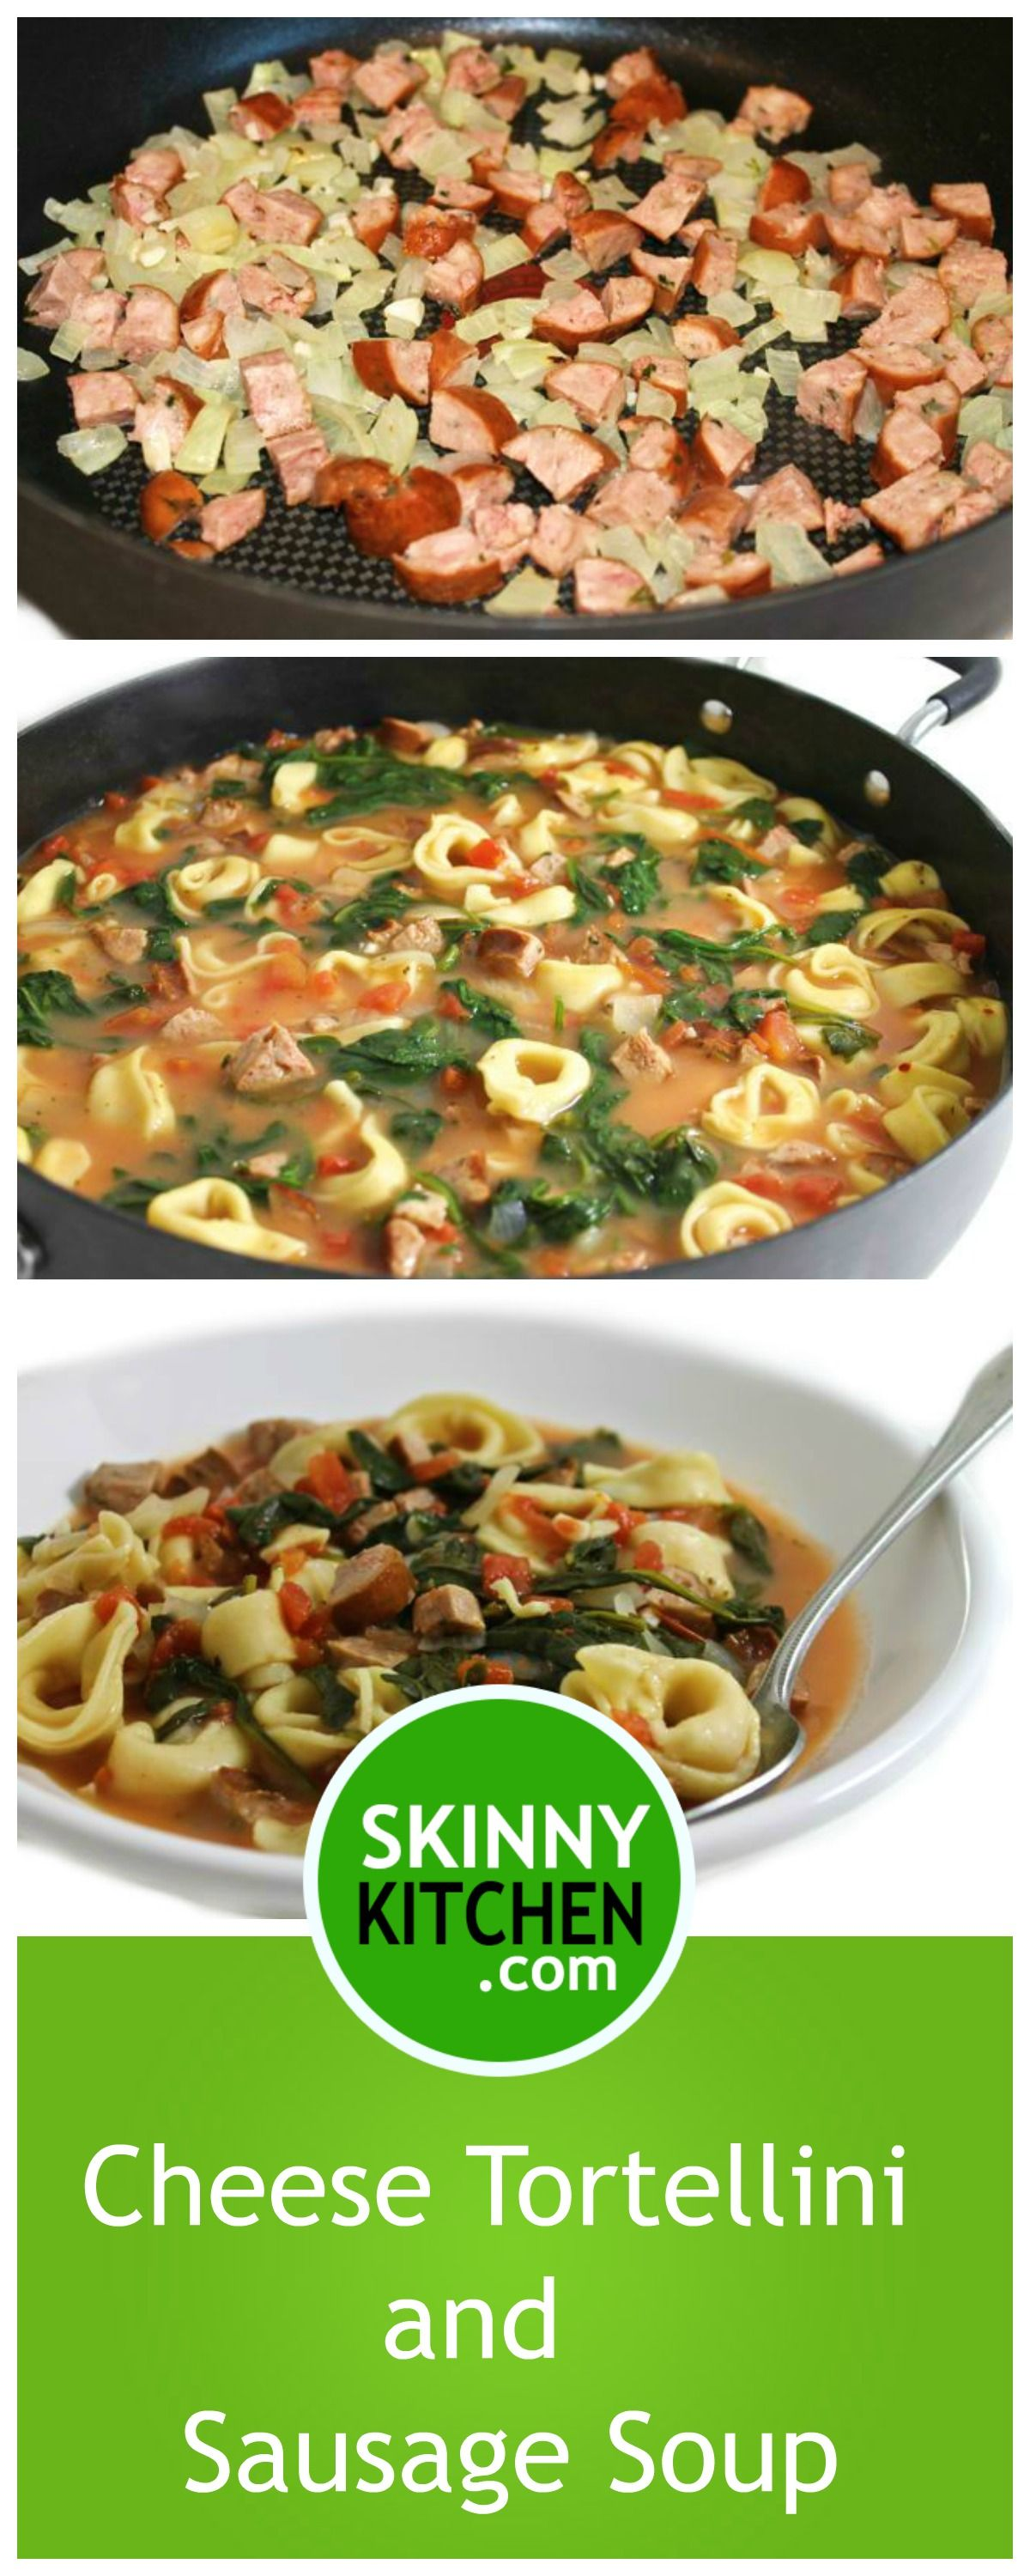 This Is A Really Good Italian Main Course Soup Each Huge 2 Cup Serving Has 245 Calories 6g Fat And 6 SmartPoints